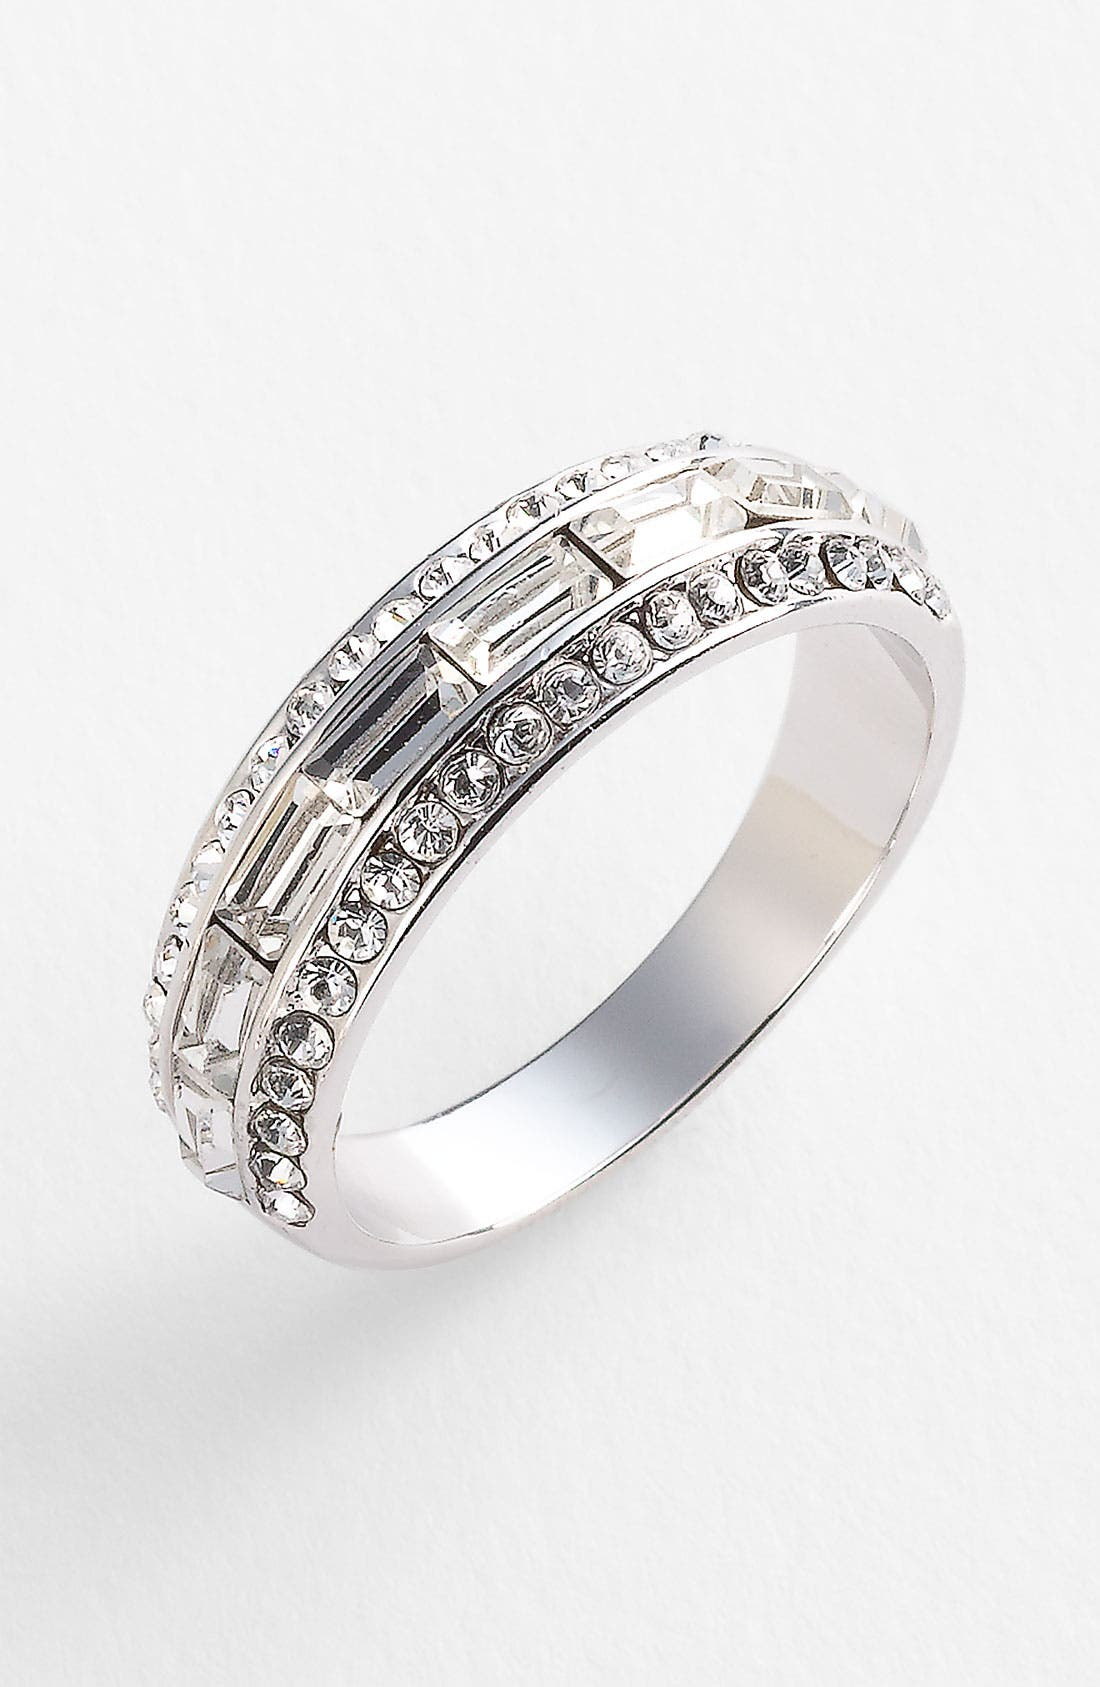 Main Image - Ariella Collection Baguette Band Ring